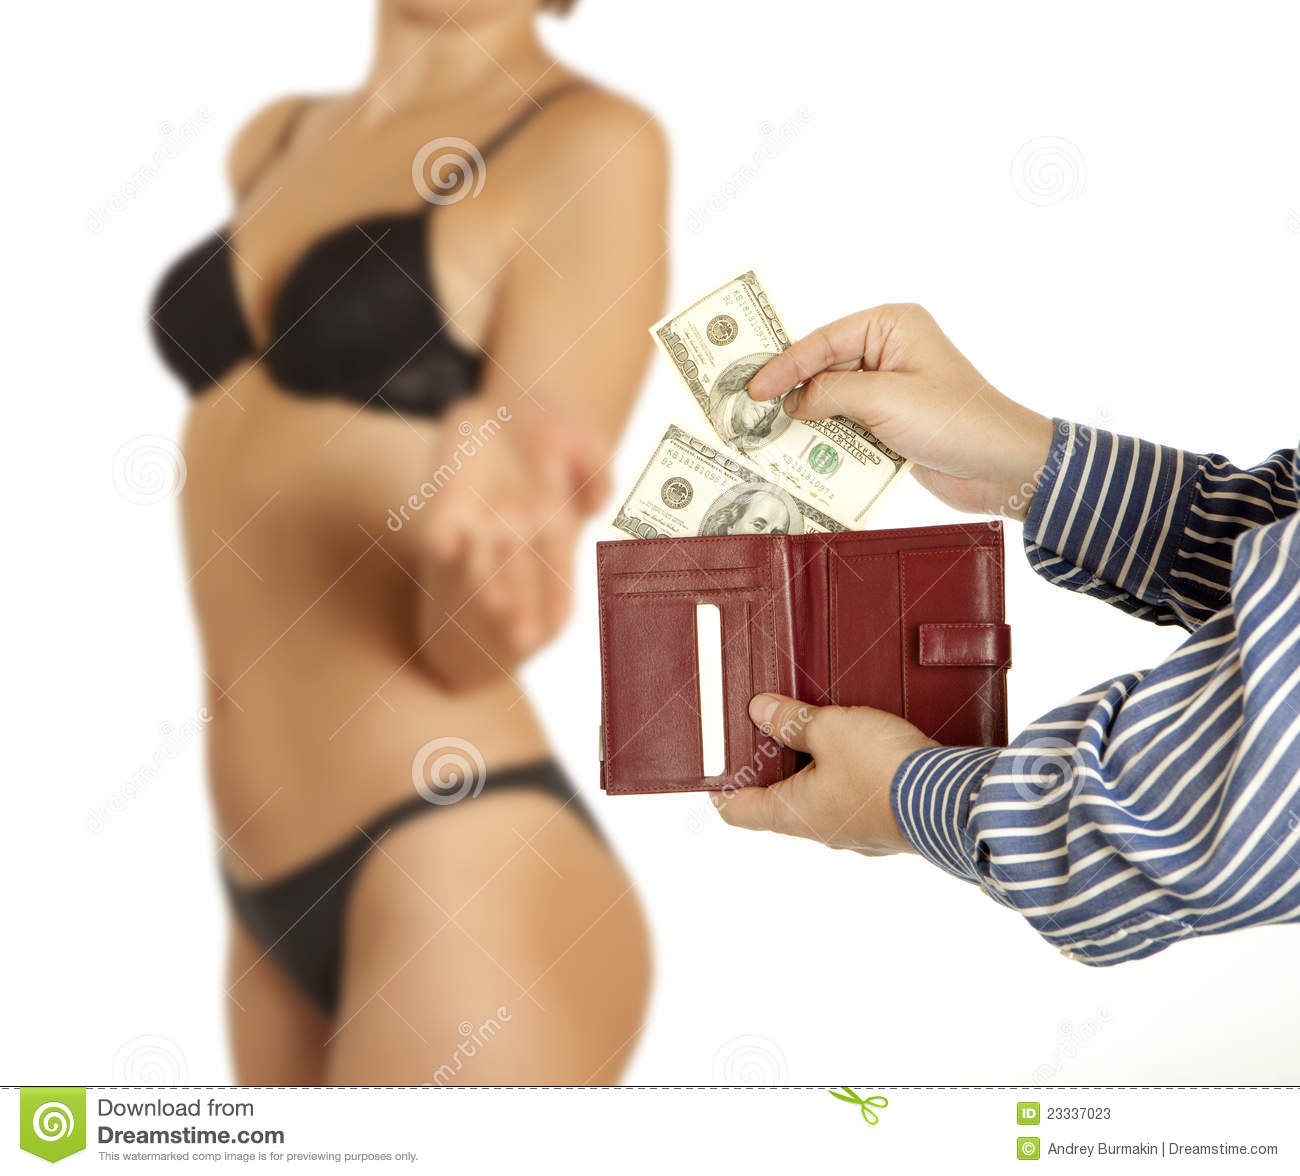 No credit card free downloadable sex